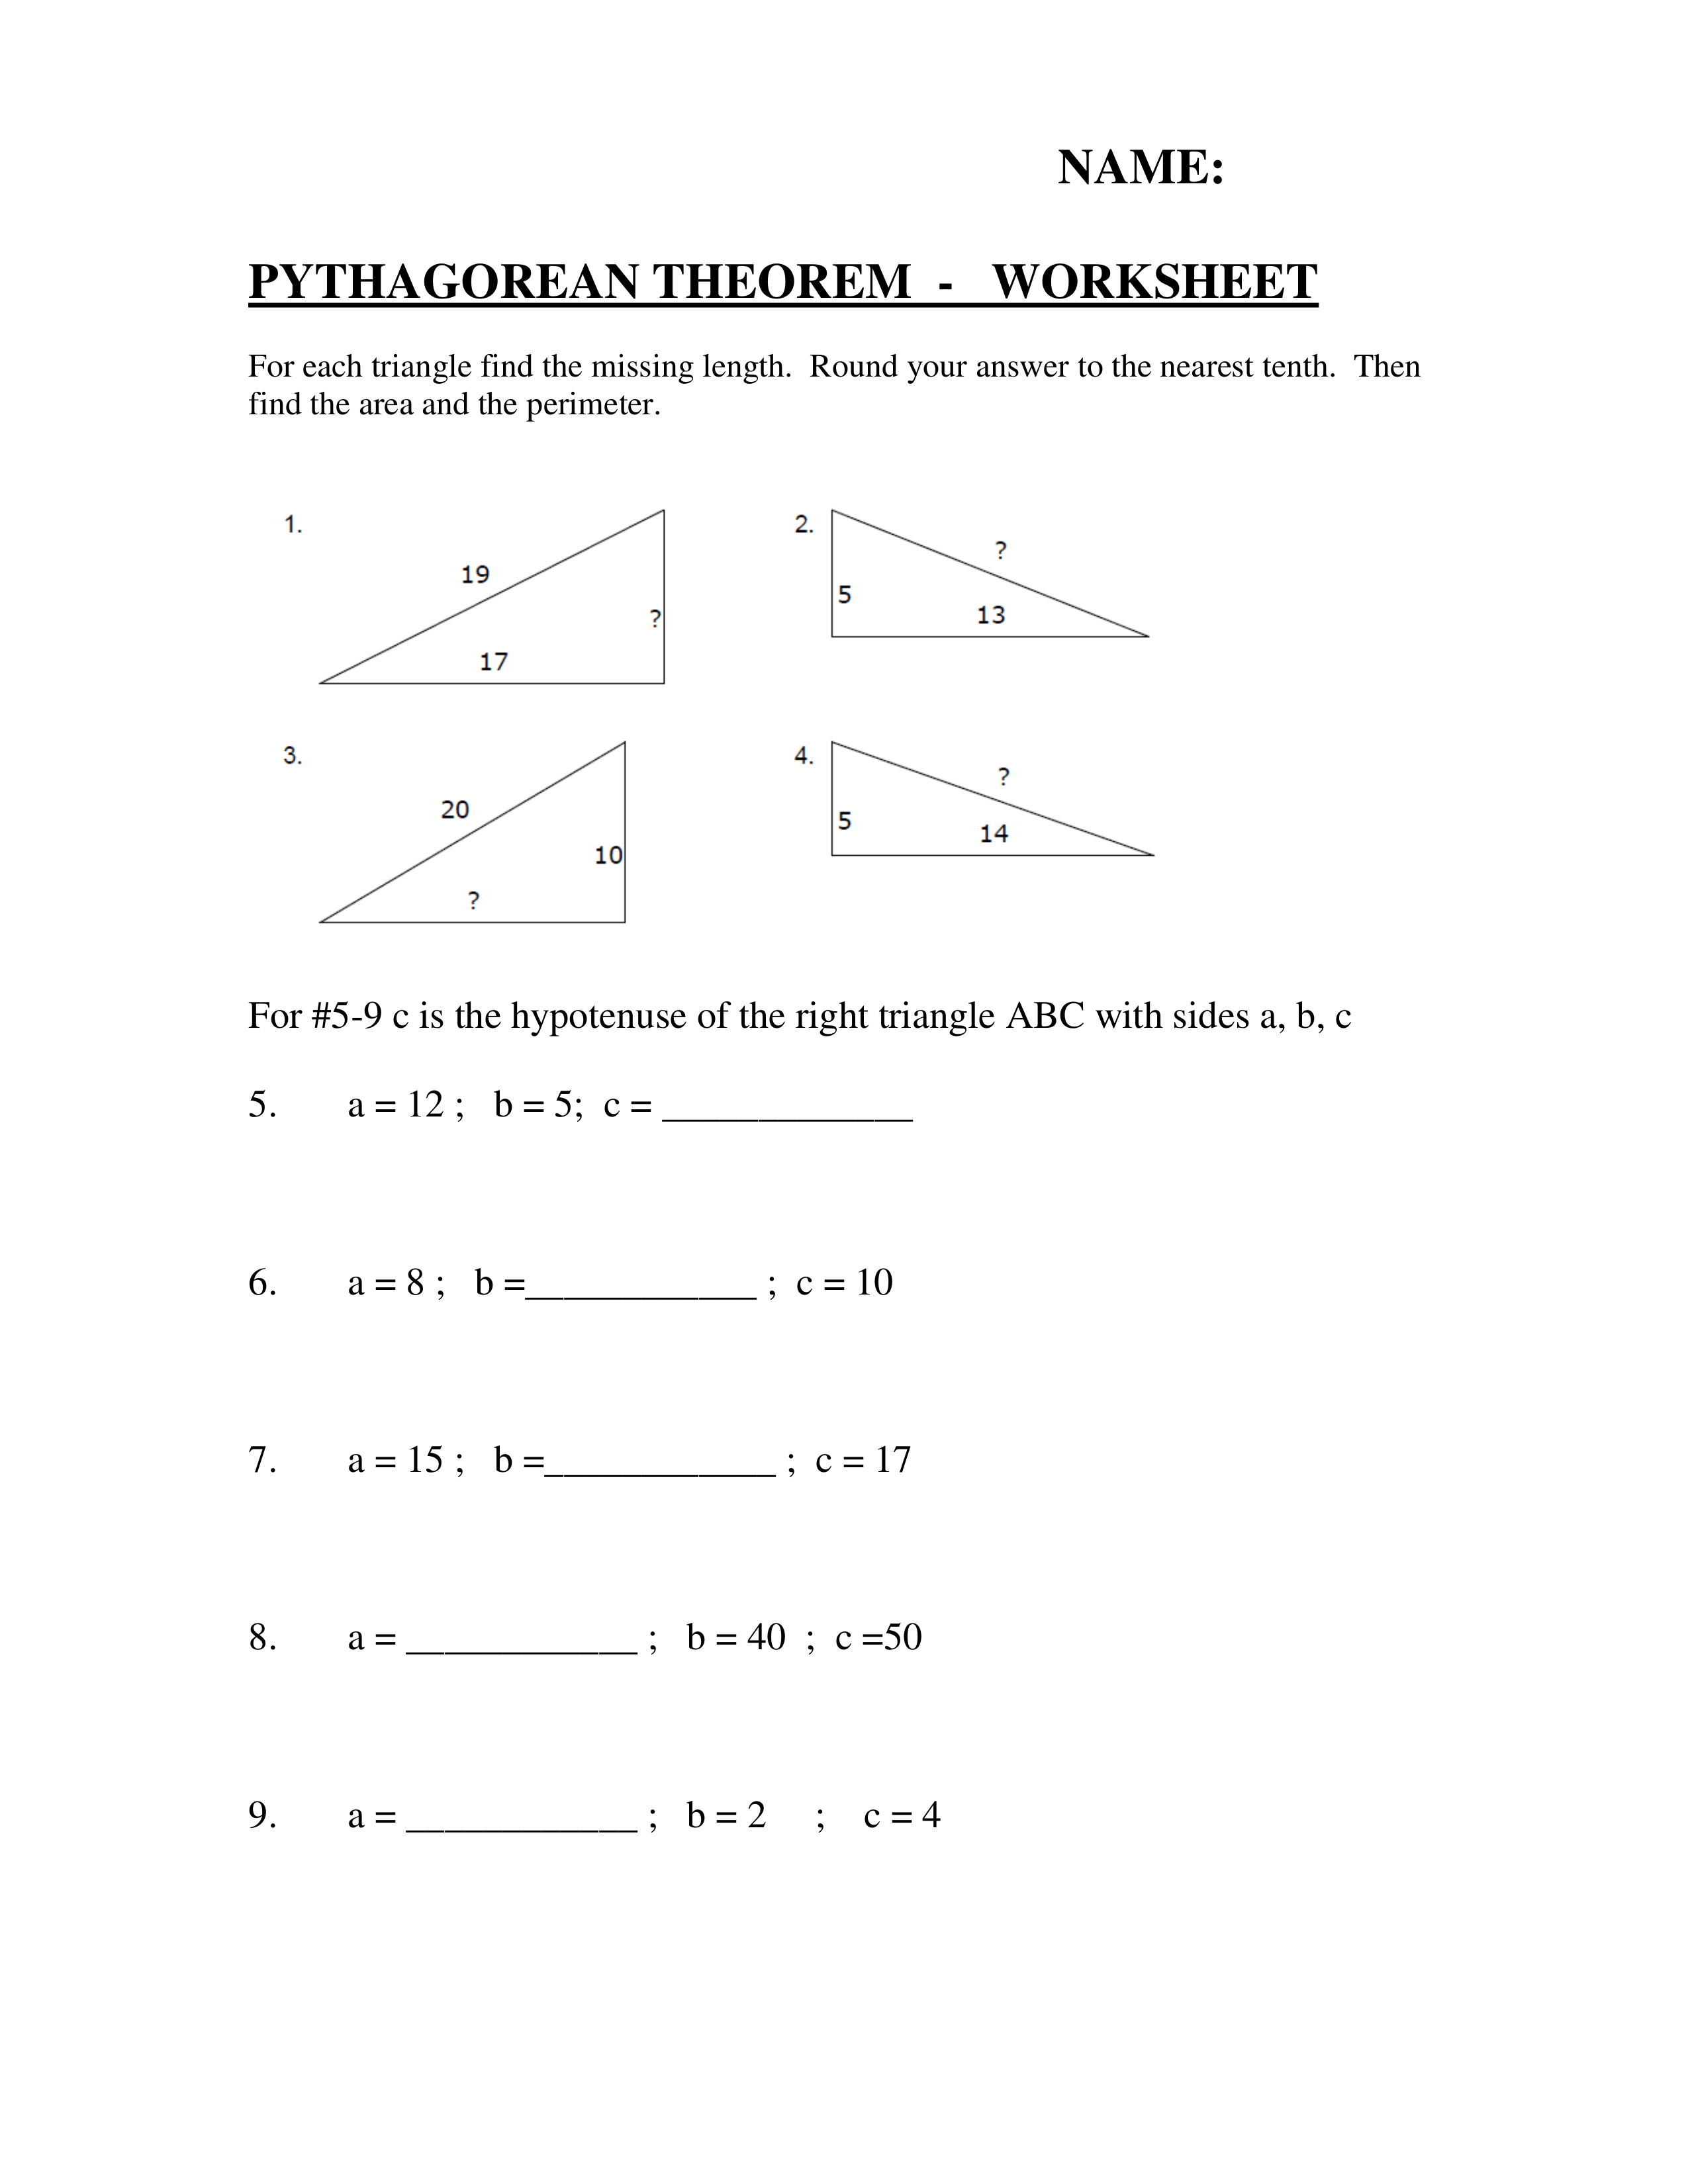 Answered Pythagorean Theorem